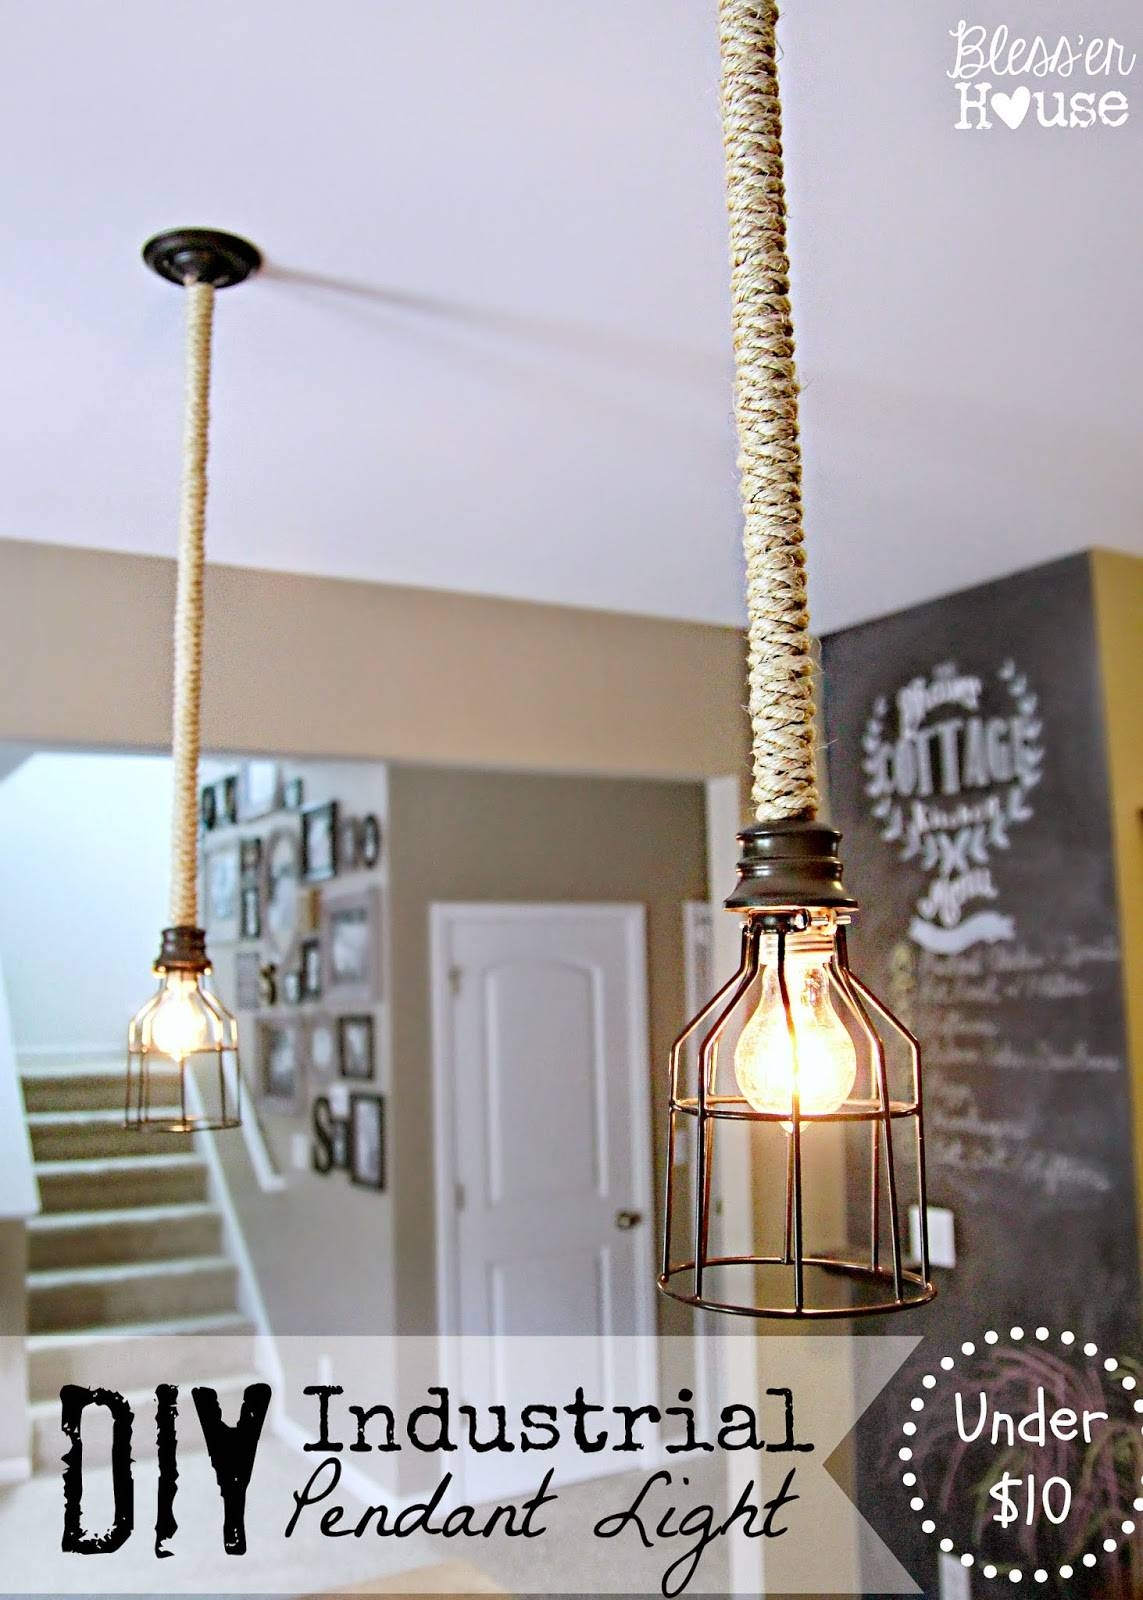 Diy Industrial Pendant Light For Under $10 - Bless'er House with Industrial Looking Pendant Light Fixtures (Image 4 of 15)